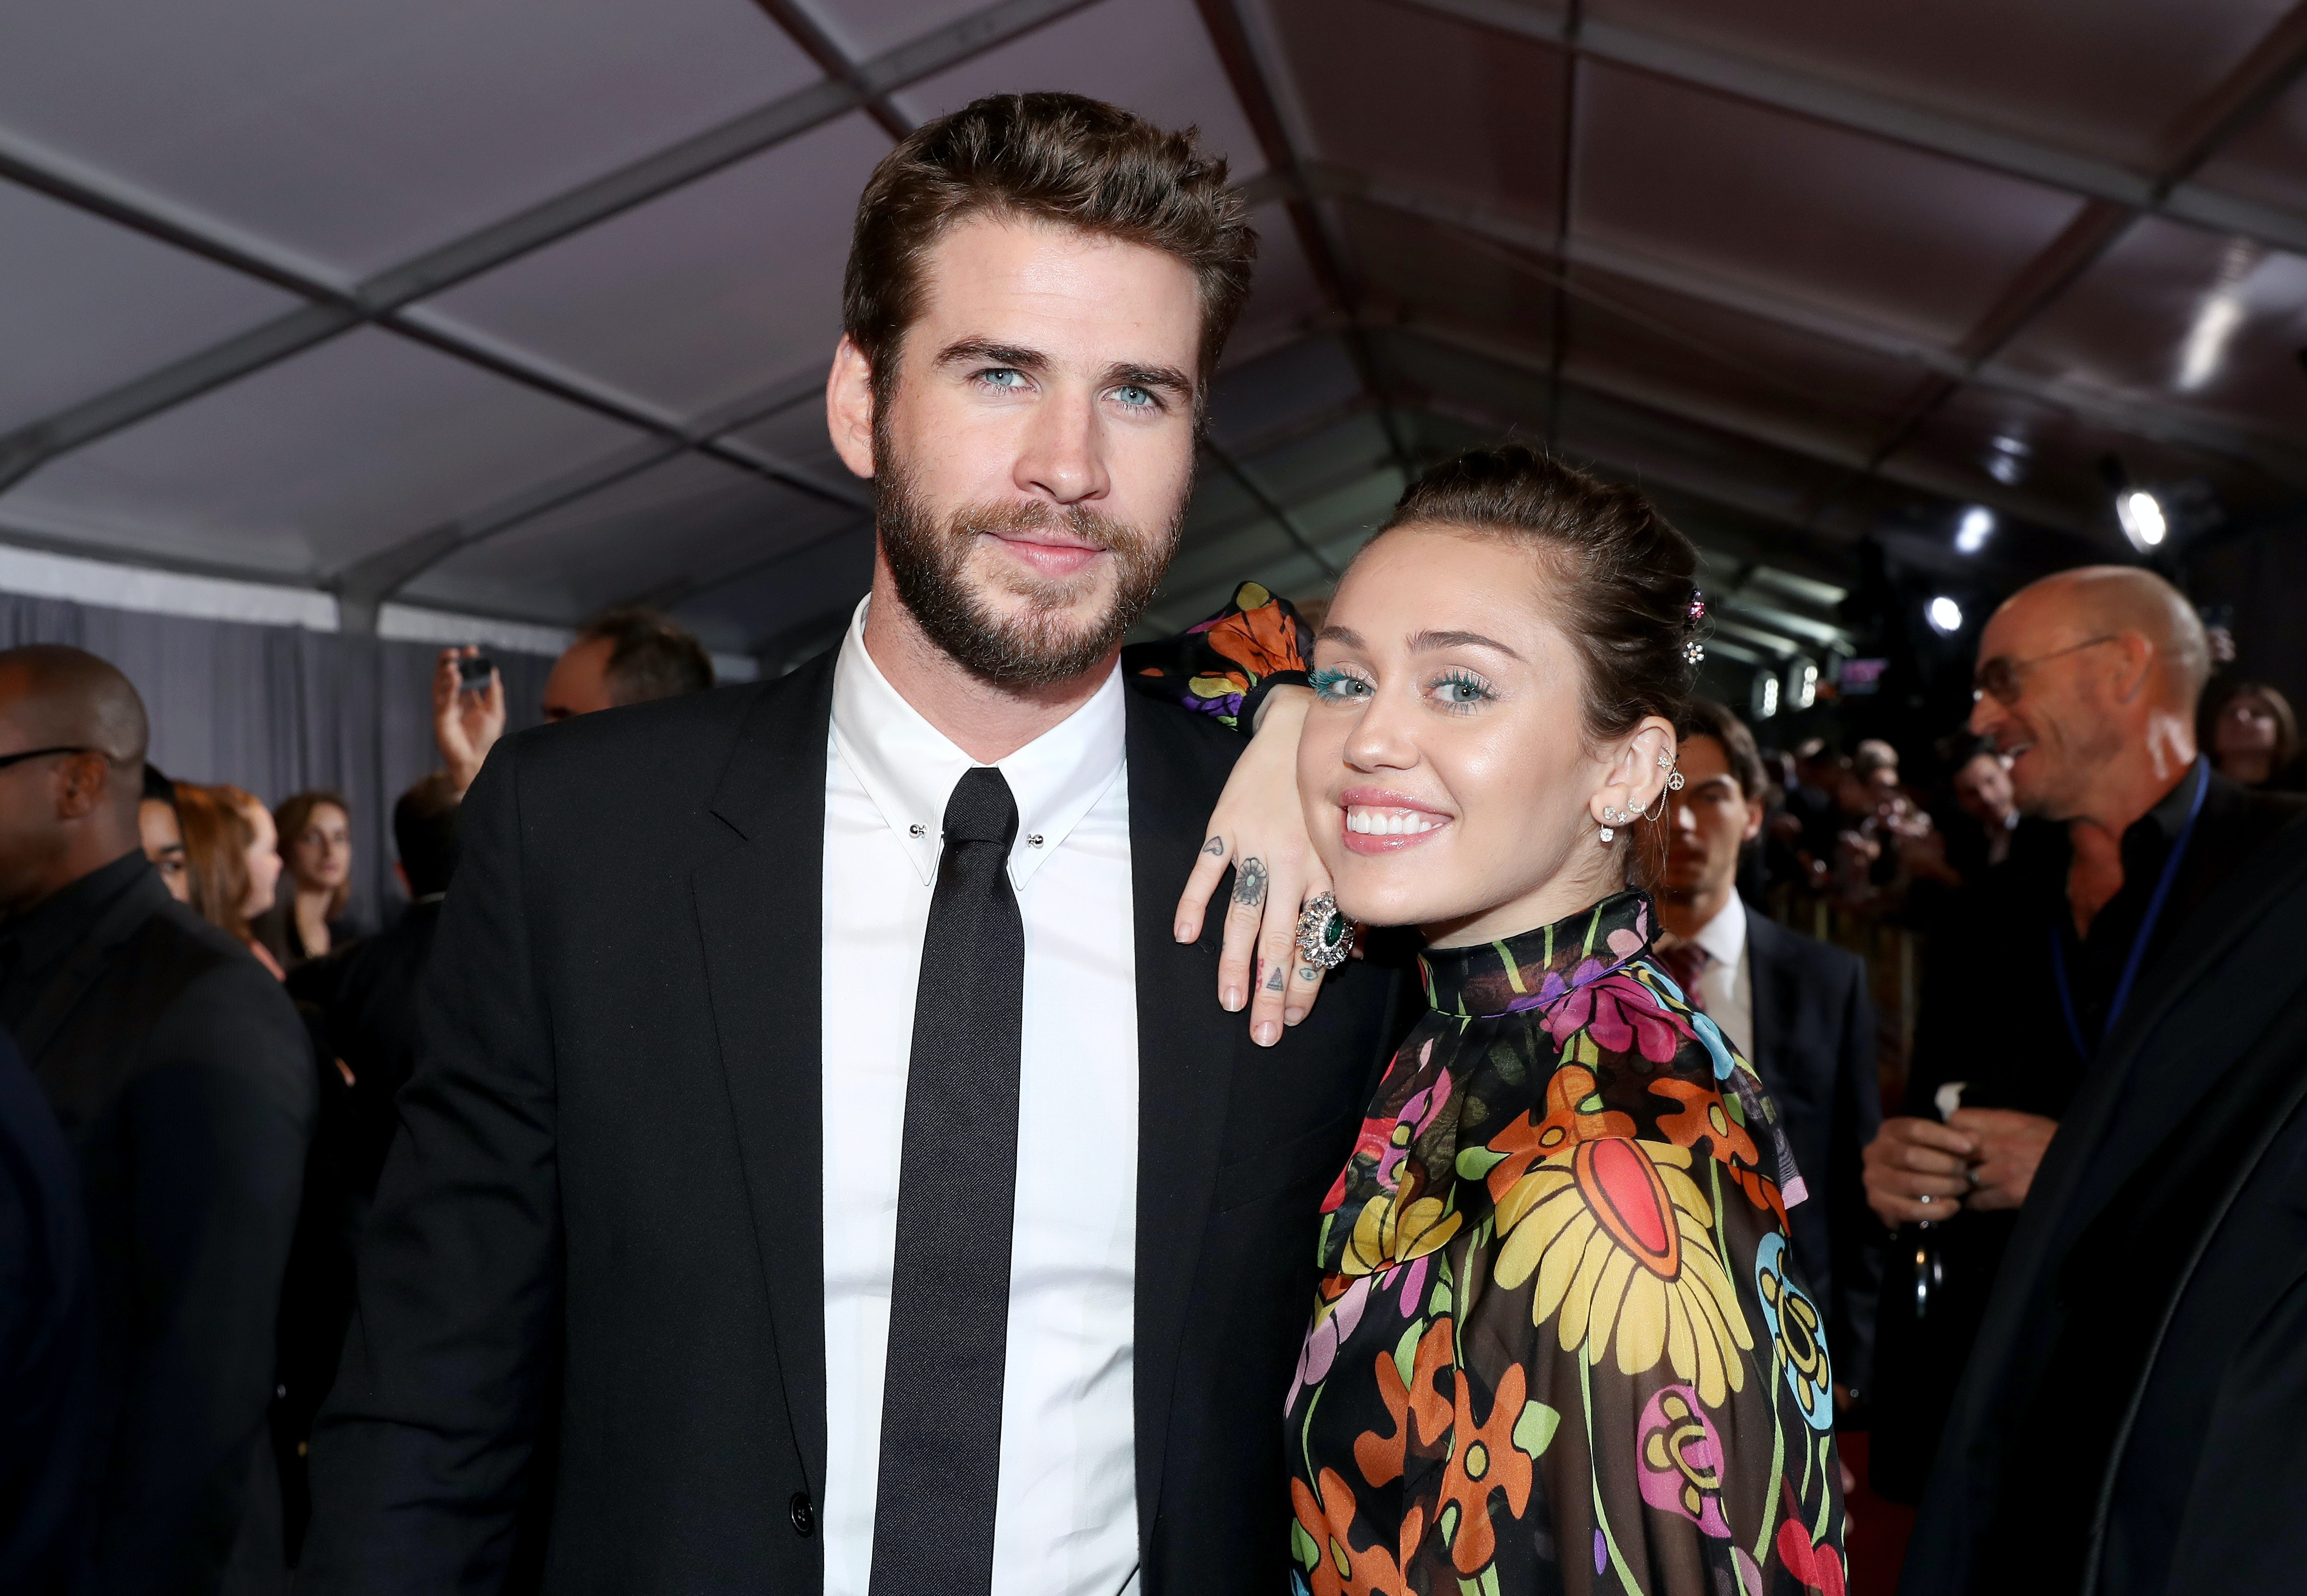 5 Miley Cyrus u0026 Liam Hemsworth Couples Costumes To Rock With Your SO This Year  sc 1 st  Elite Daily & 5 Miley Cyrus u0026 Liam Hemsworth Couples Costumes To Rock With Your SO ...